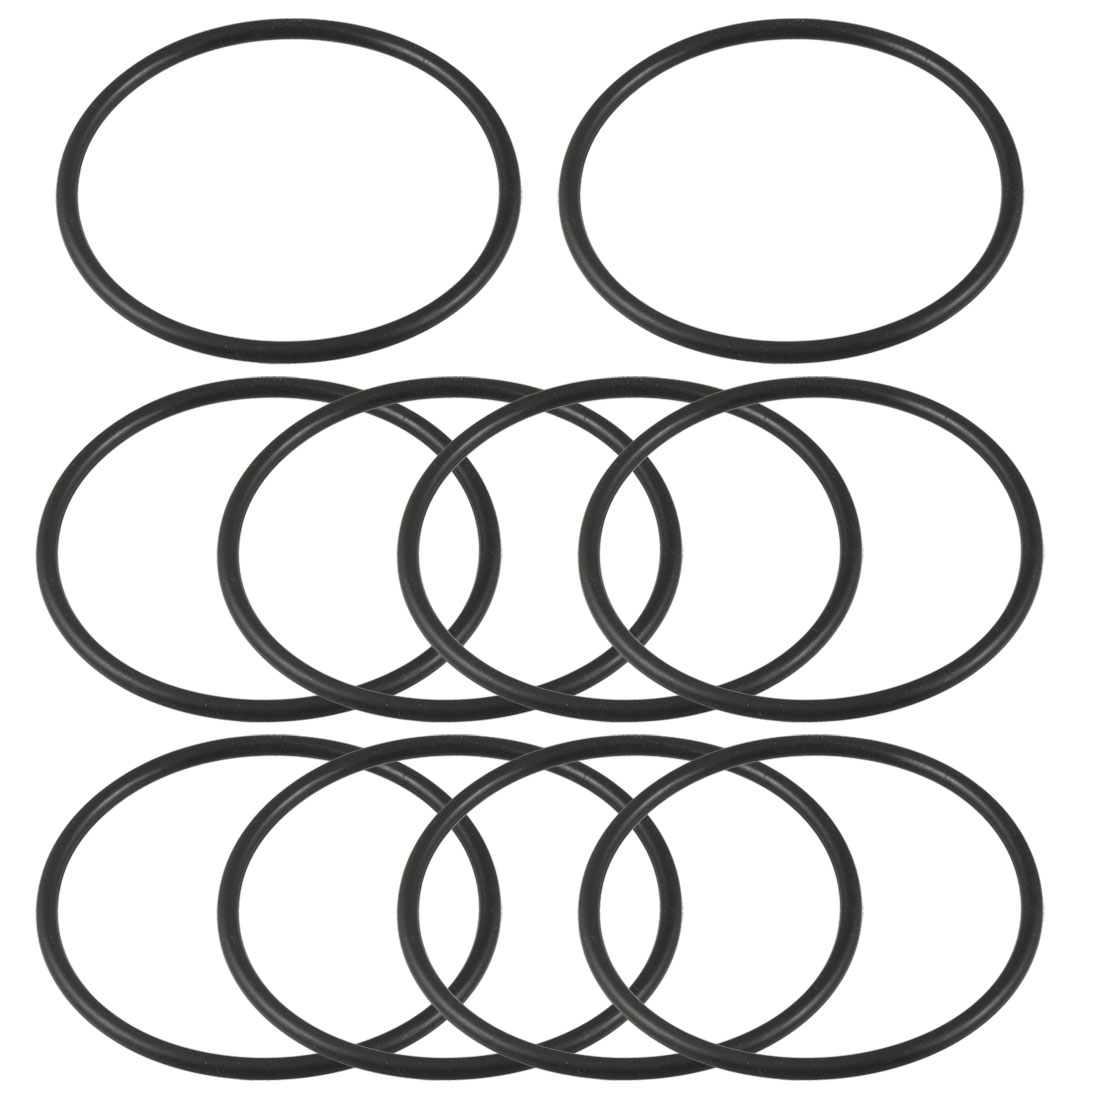 Unique Bargains 10 PCS 69mm x 3.1mm Rubber Sealing Oil Filter O Rings Gaskets